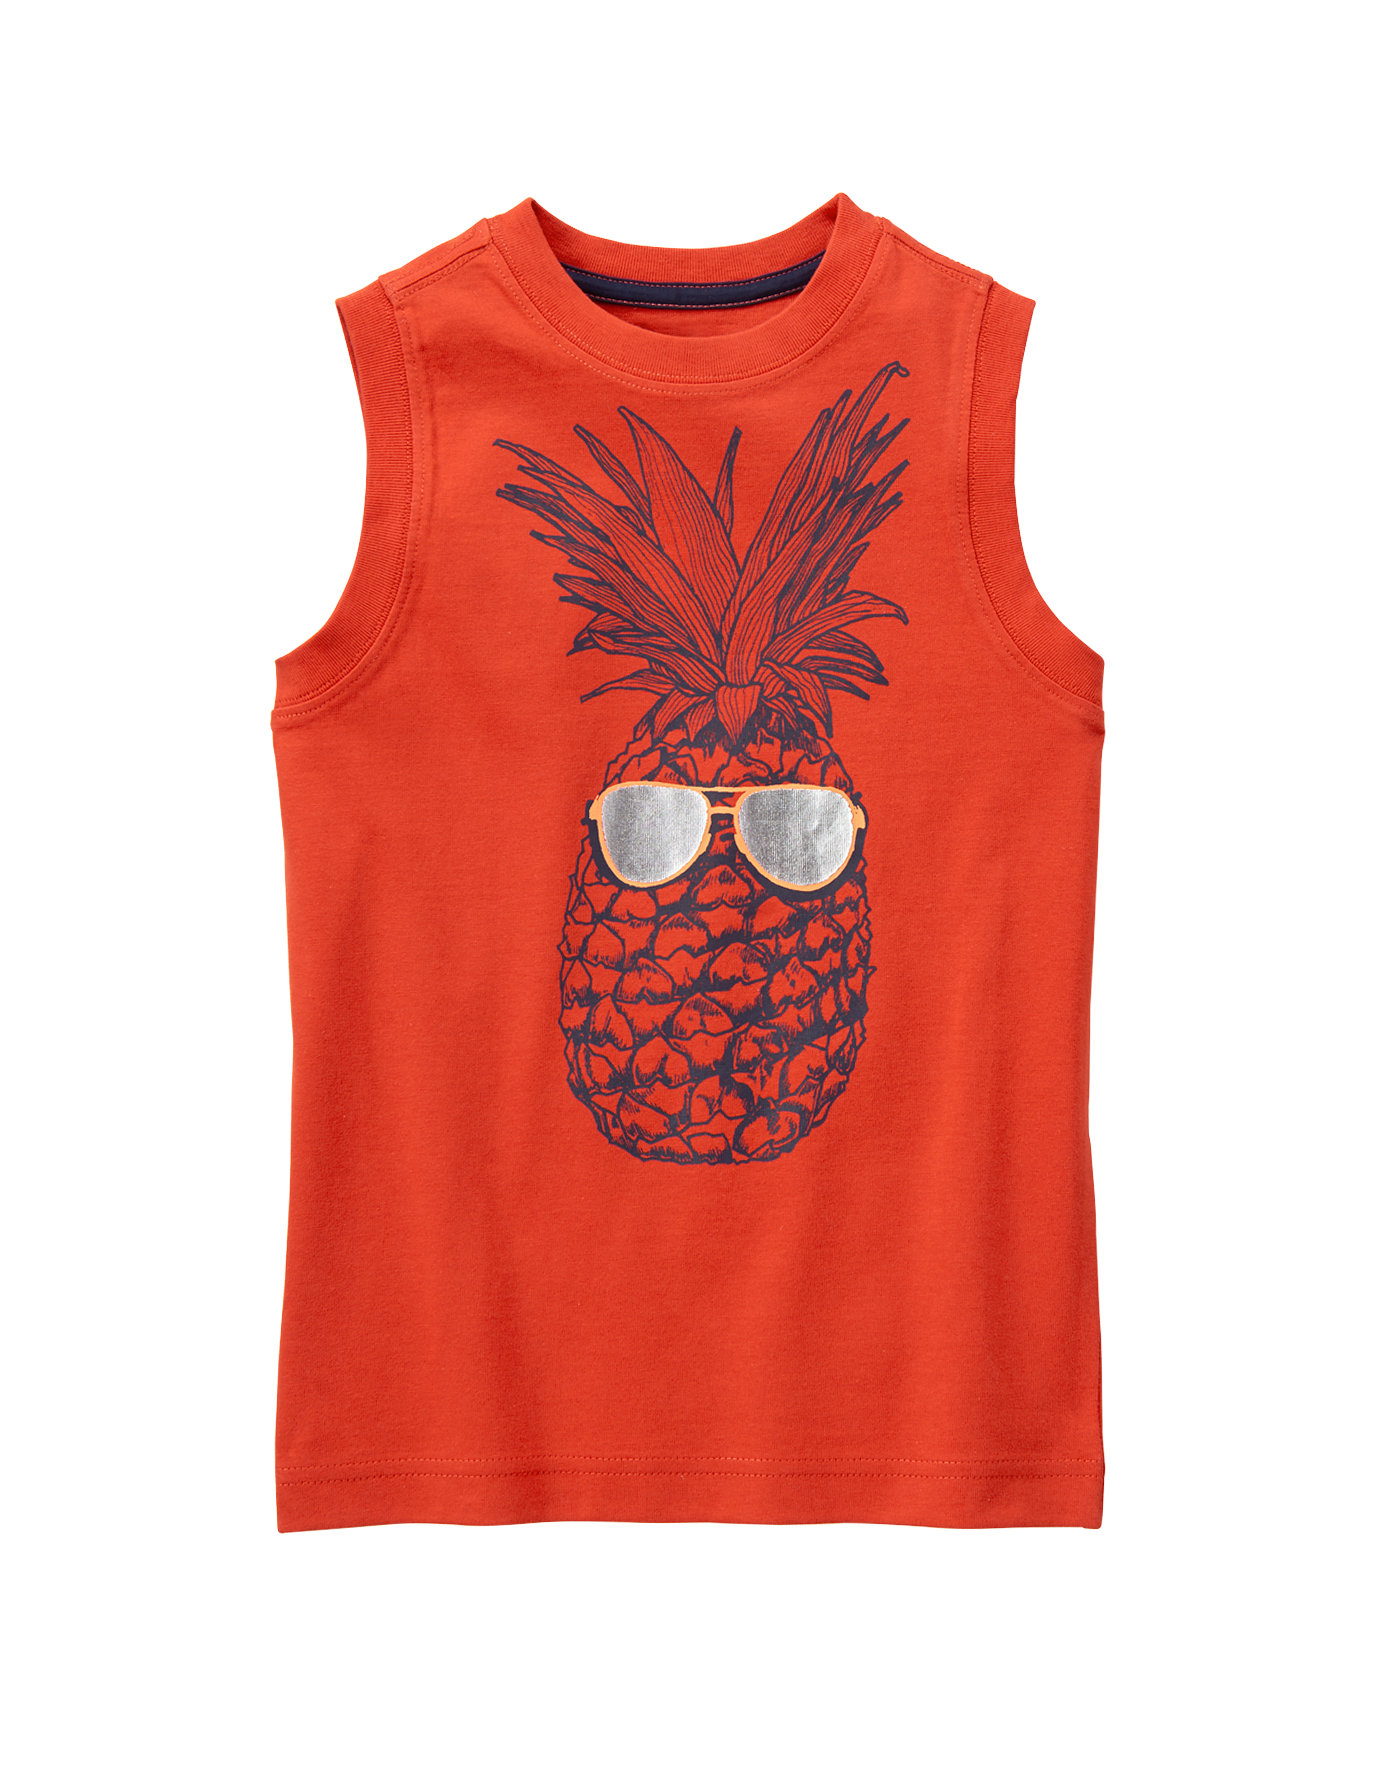 Find the latest styles in the boys graphic tees sale at Old Navy. Our wide selection of boys graphic tees sale includes boys boom box-graphic tees, boys school's out-humor tees, boys 'Instant Good Kid' graphic tees and boys humor-message tees.